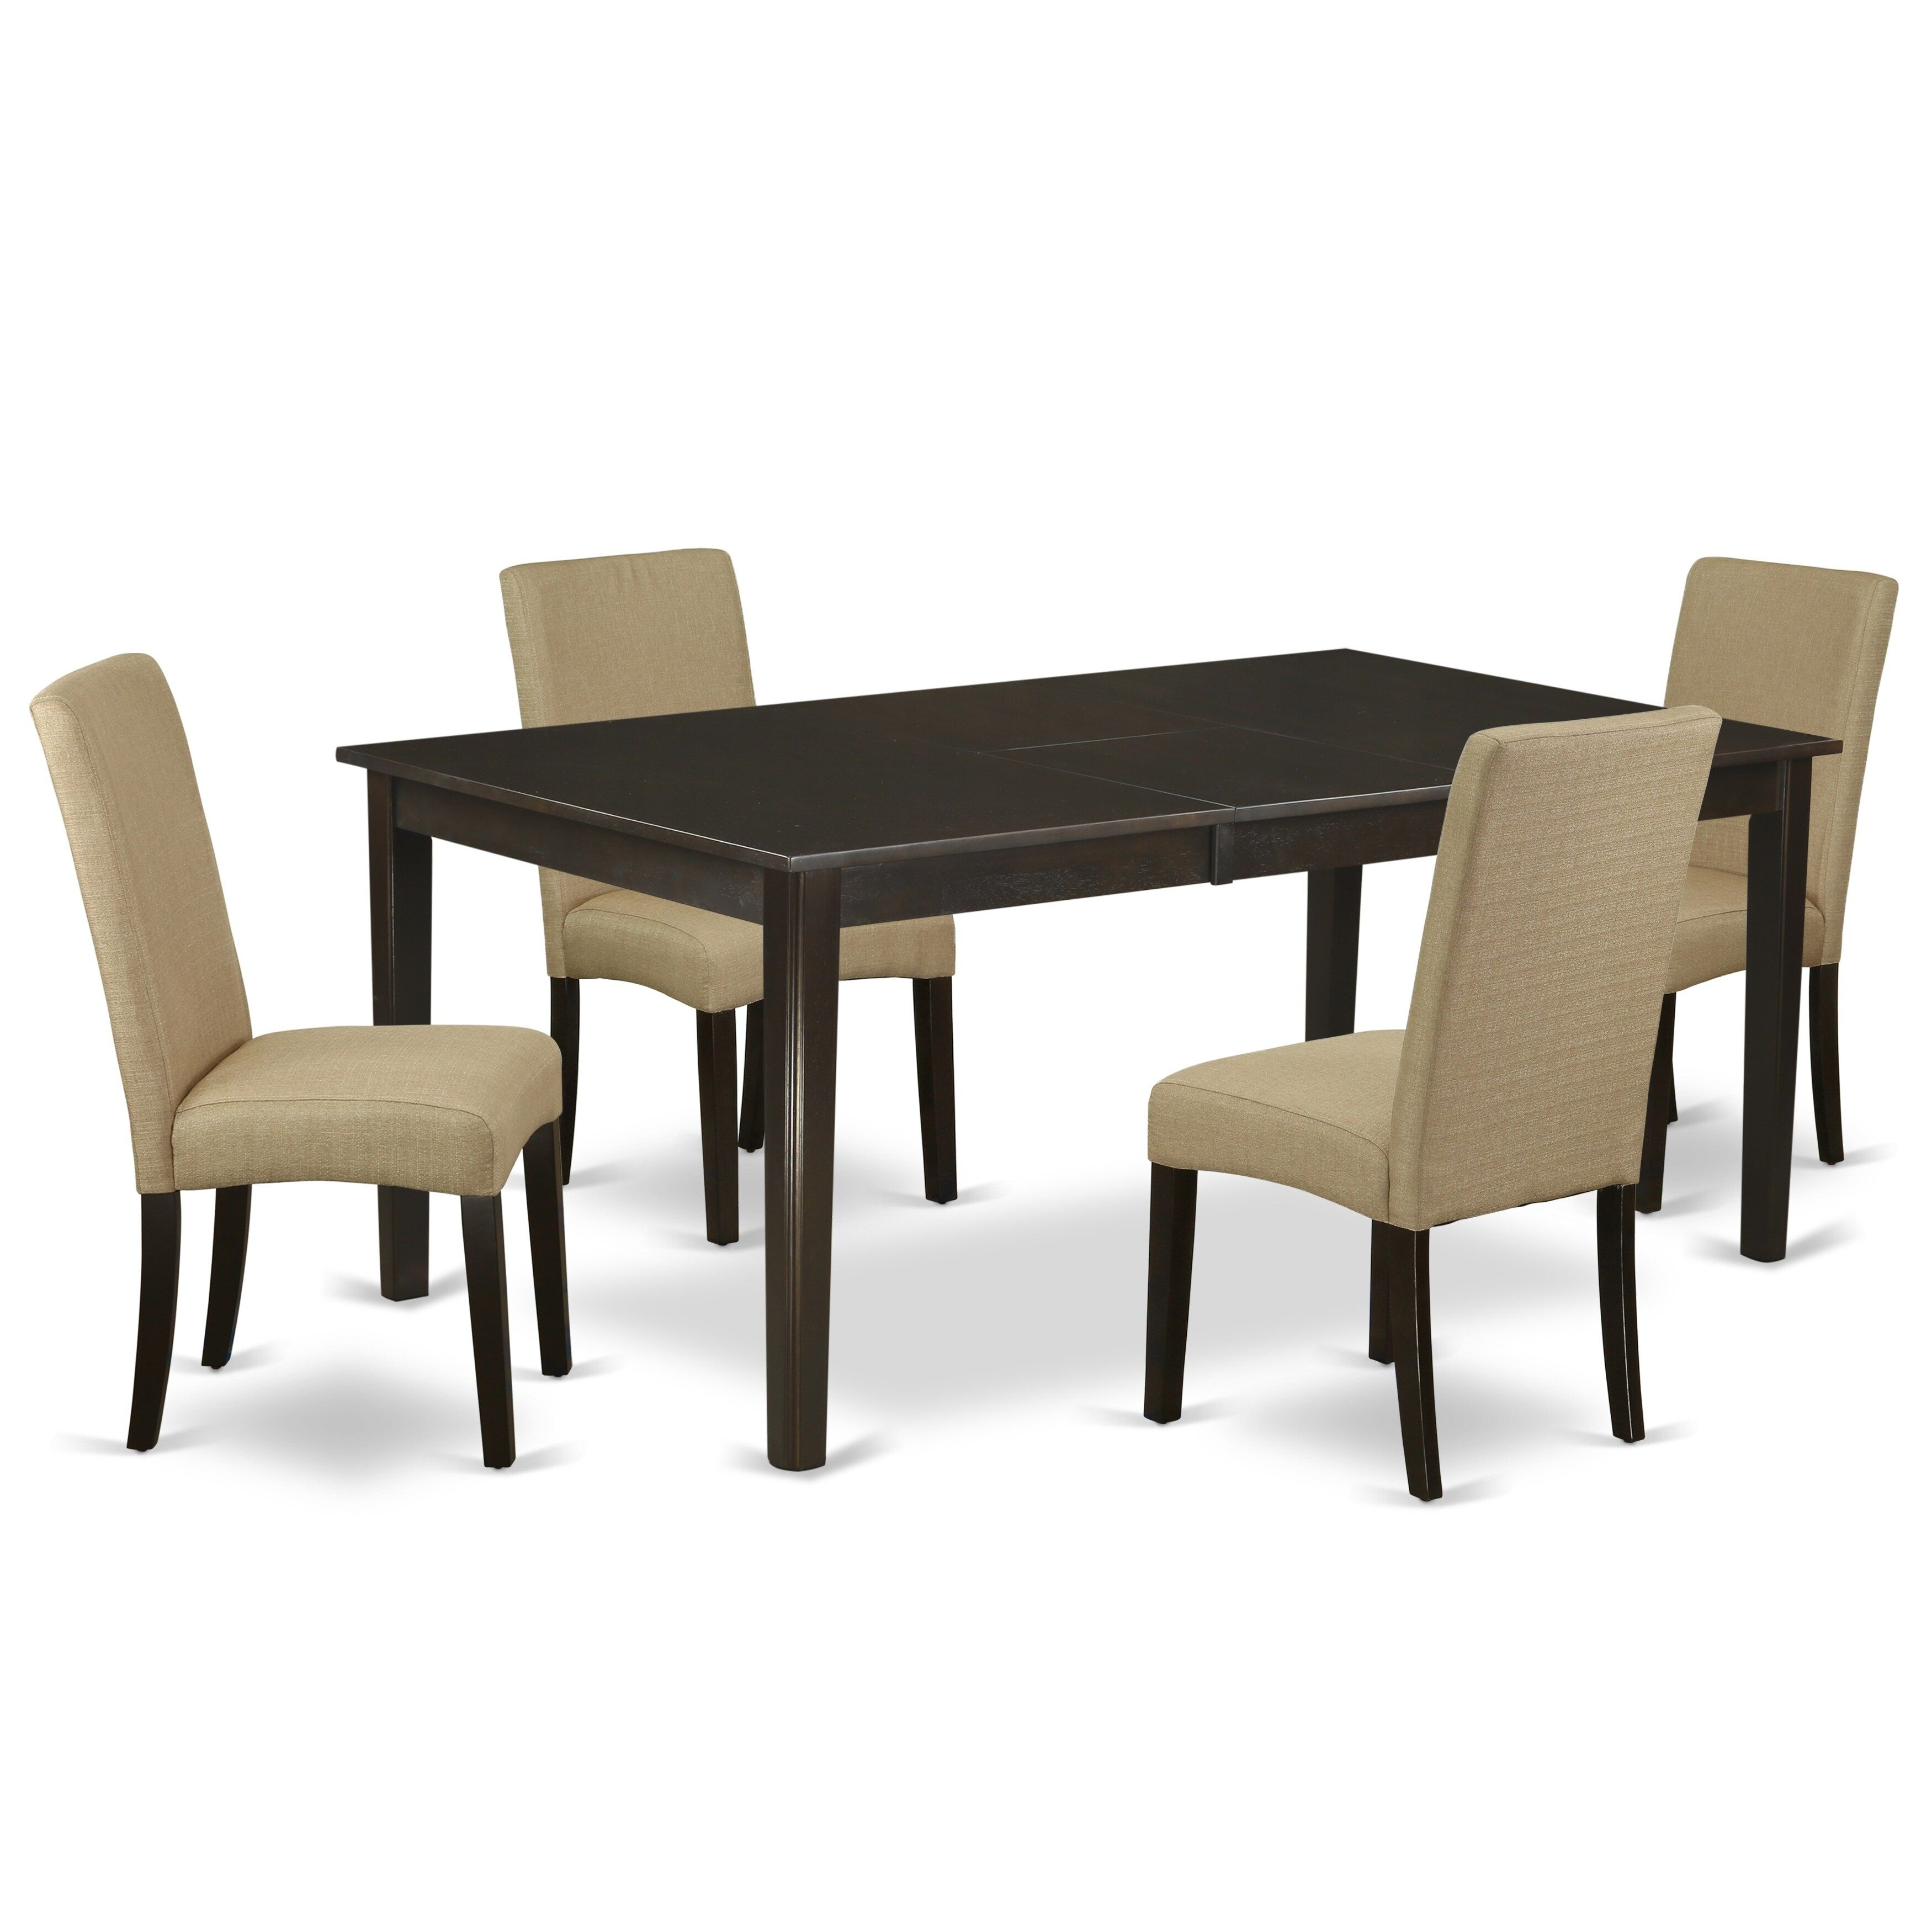 Rectangle 54 72 Inch Table And Parson Chairs In Brown Linen Fabric